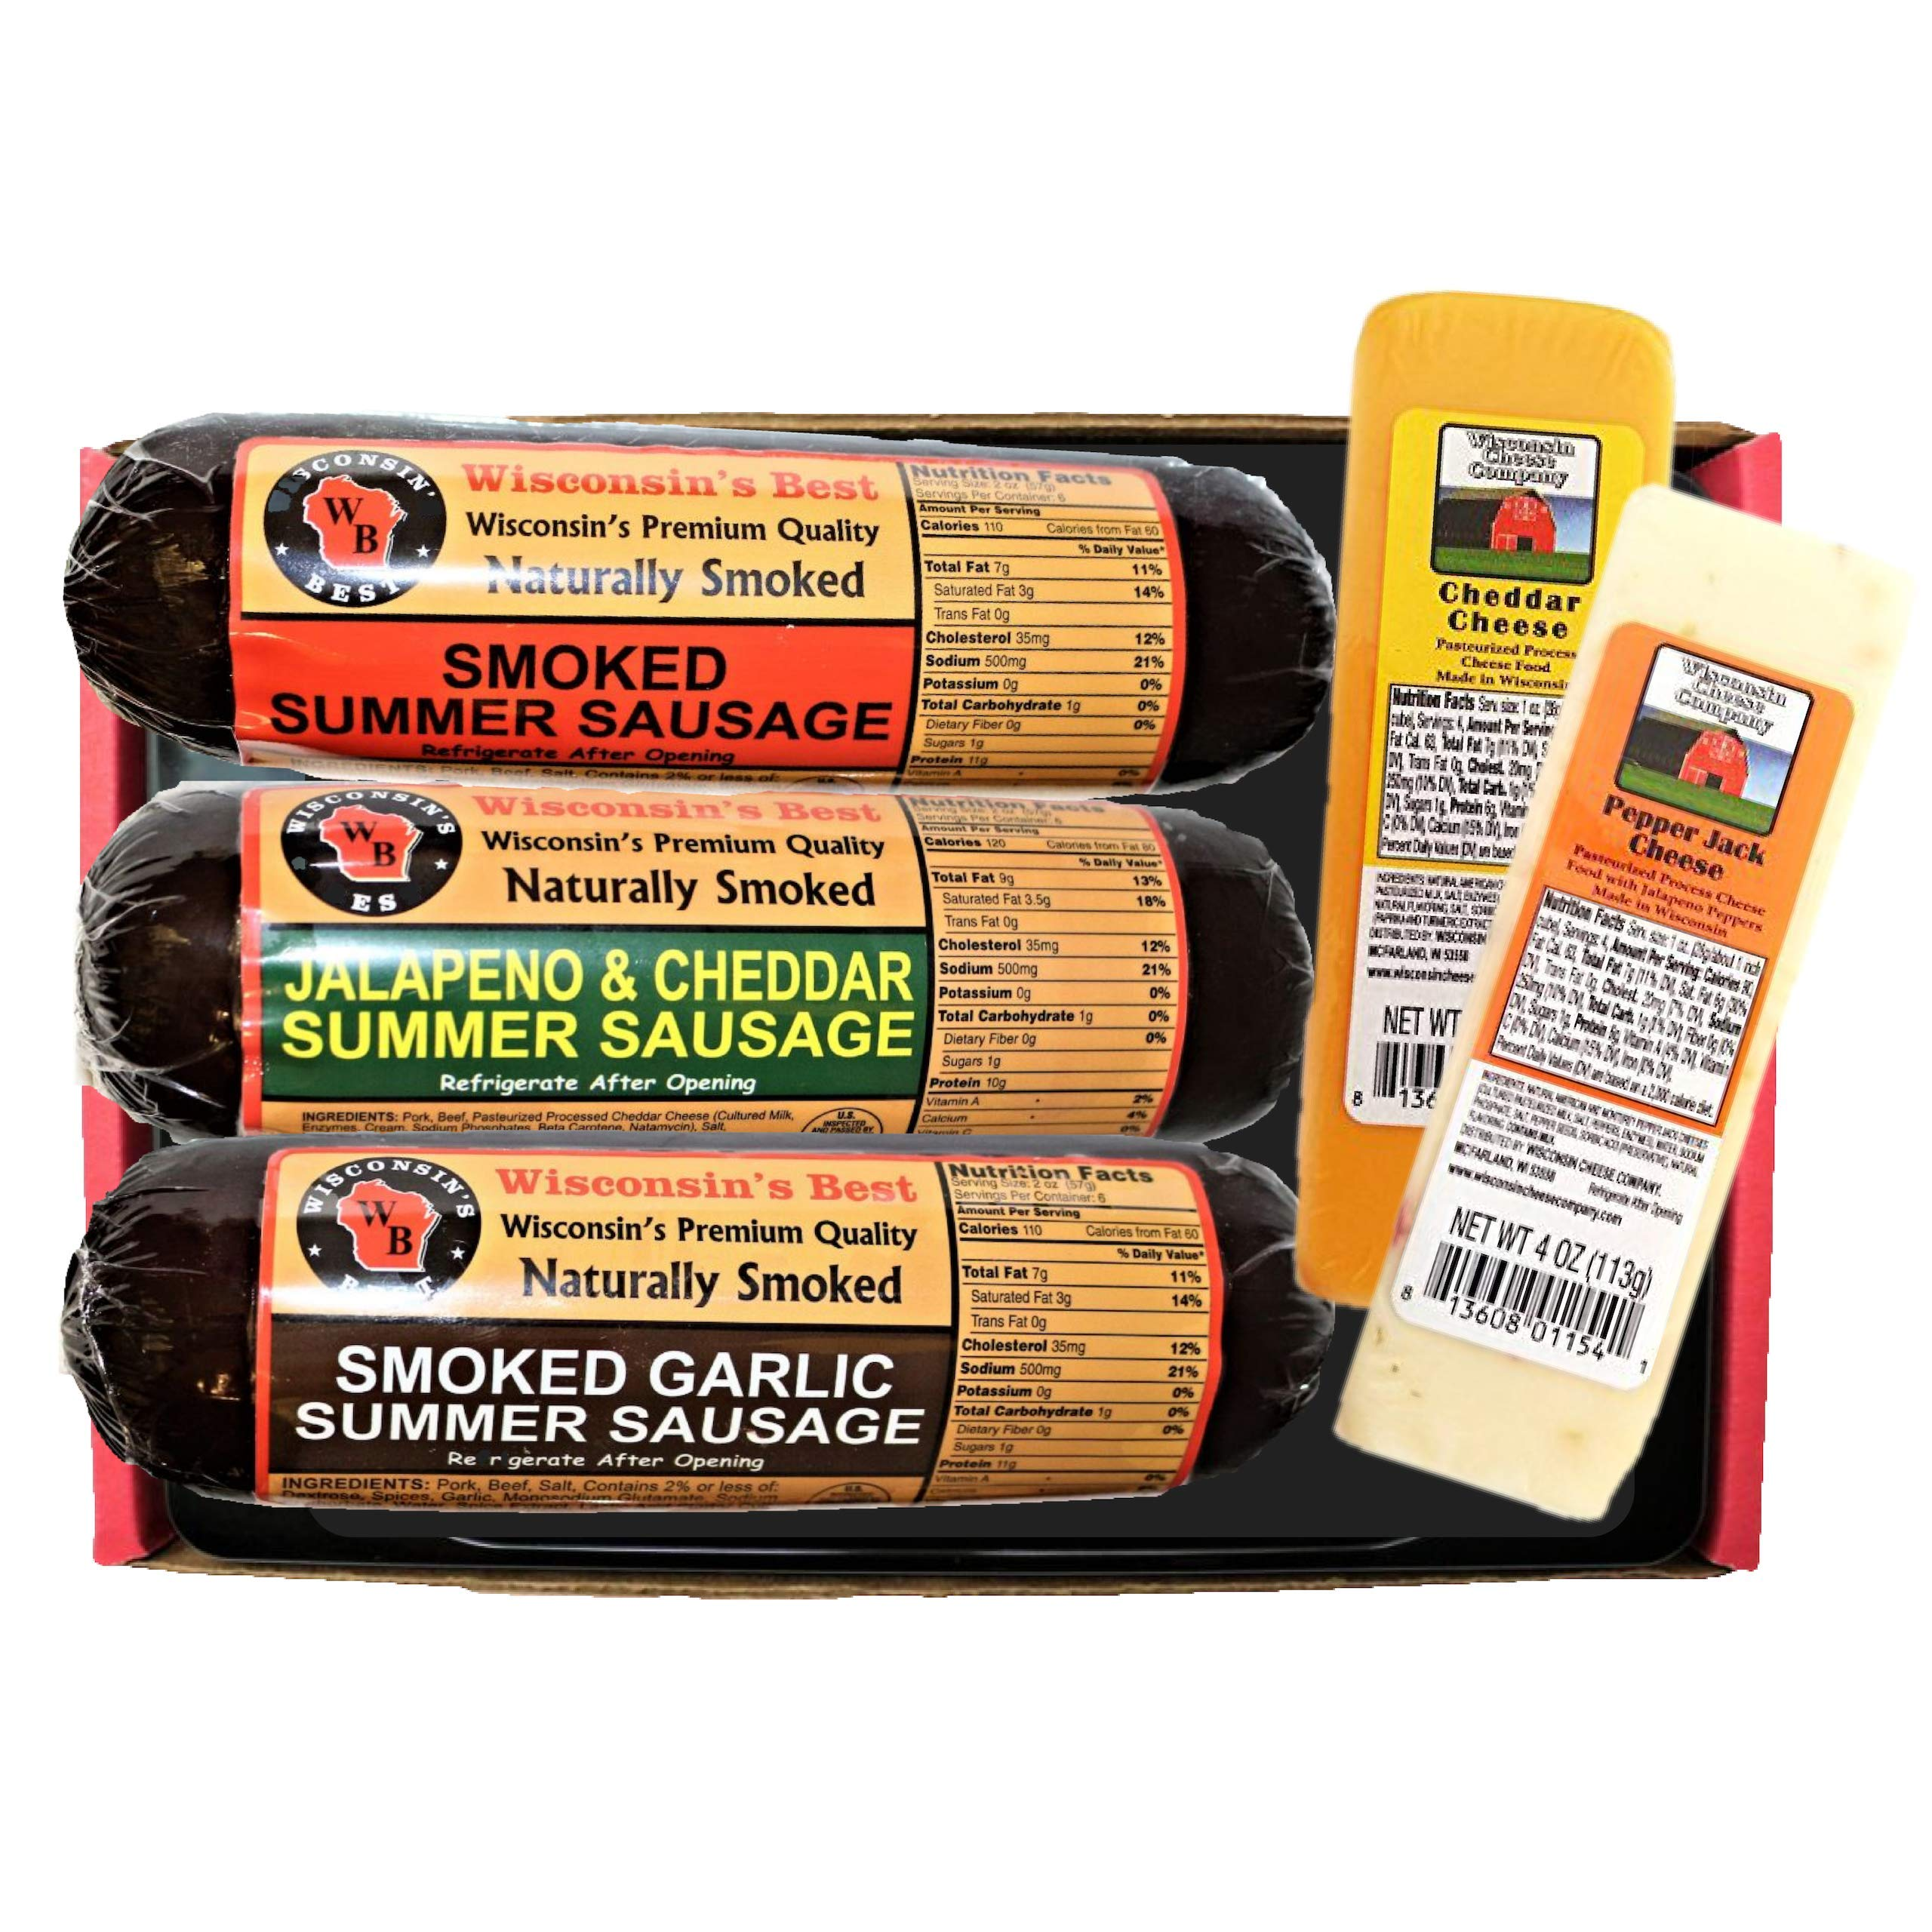 Gourmet Variety Sampler Gift Basket - Smoked Summer Sausages & 100% Wisconsin Cheeses - GLUTEN-FREE - Perfect Cheese and Sausage Snack!! by WISCONSIN'S BEST and WISCONSIN CHEESE COMPANY (Image #1)